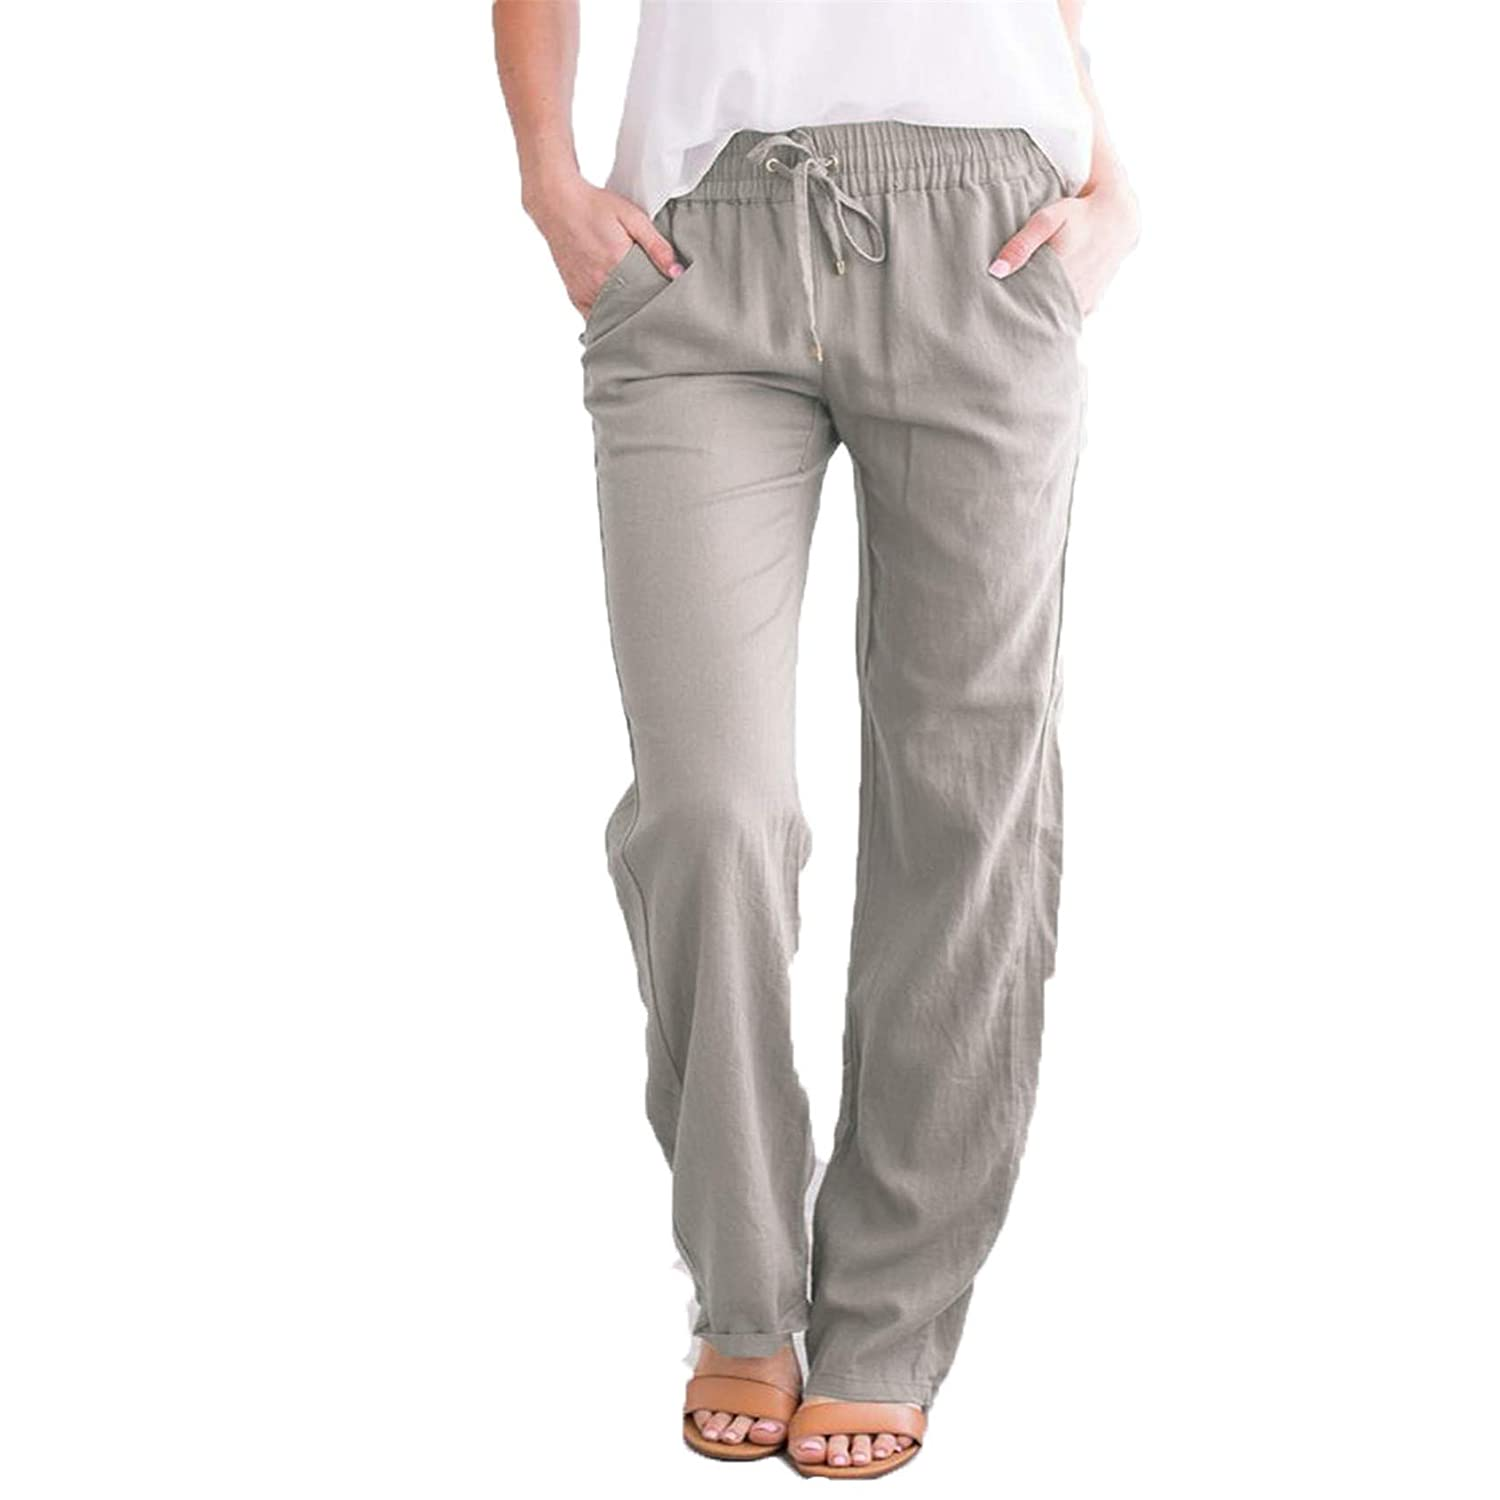 Women Solid Linen Pants Drawstring Elastic Waist Pant Casual Pants Summer Beach Trousers with Pockets (XX-Large,Light grey)